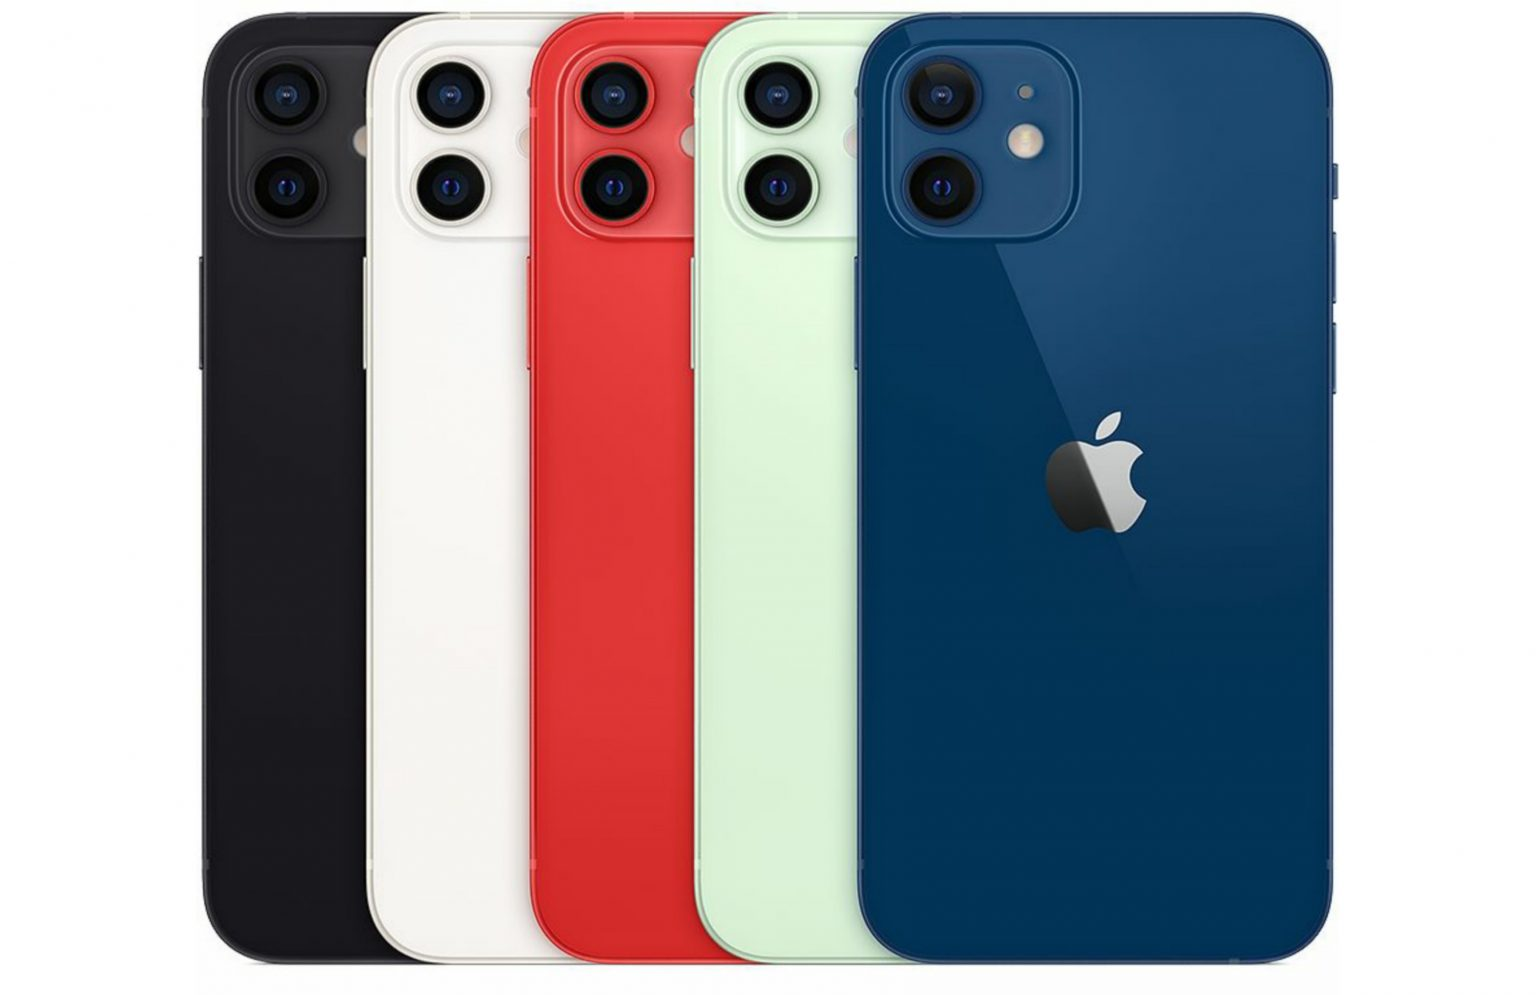 iPhone 12 price in nepal